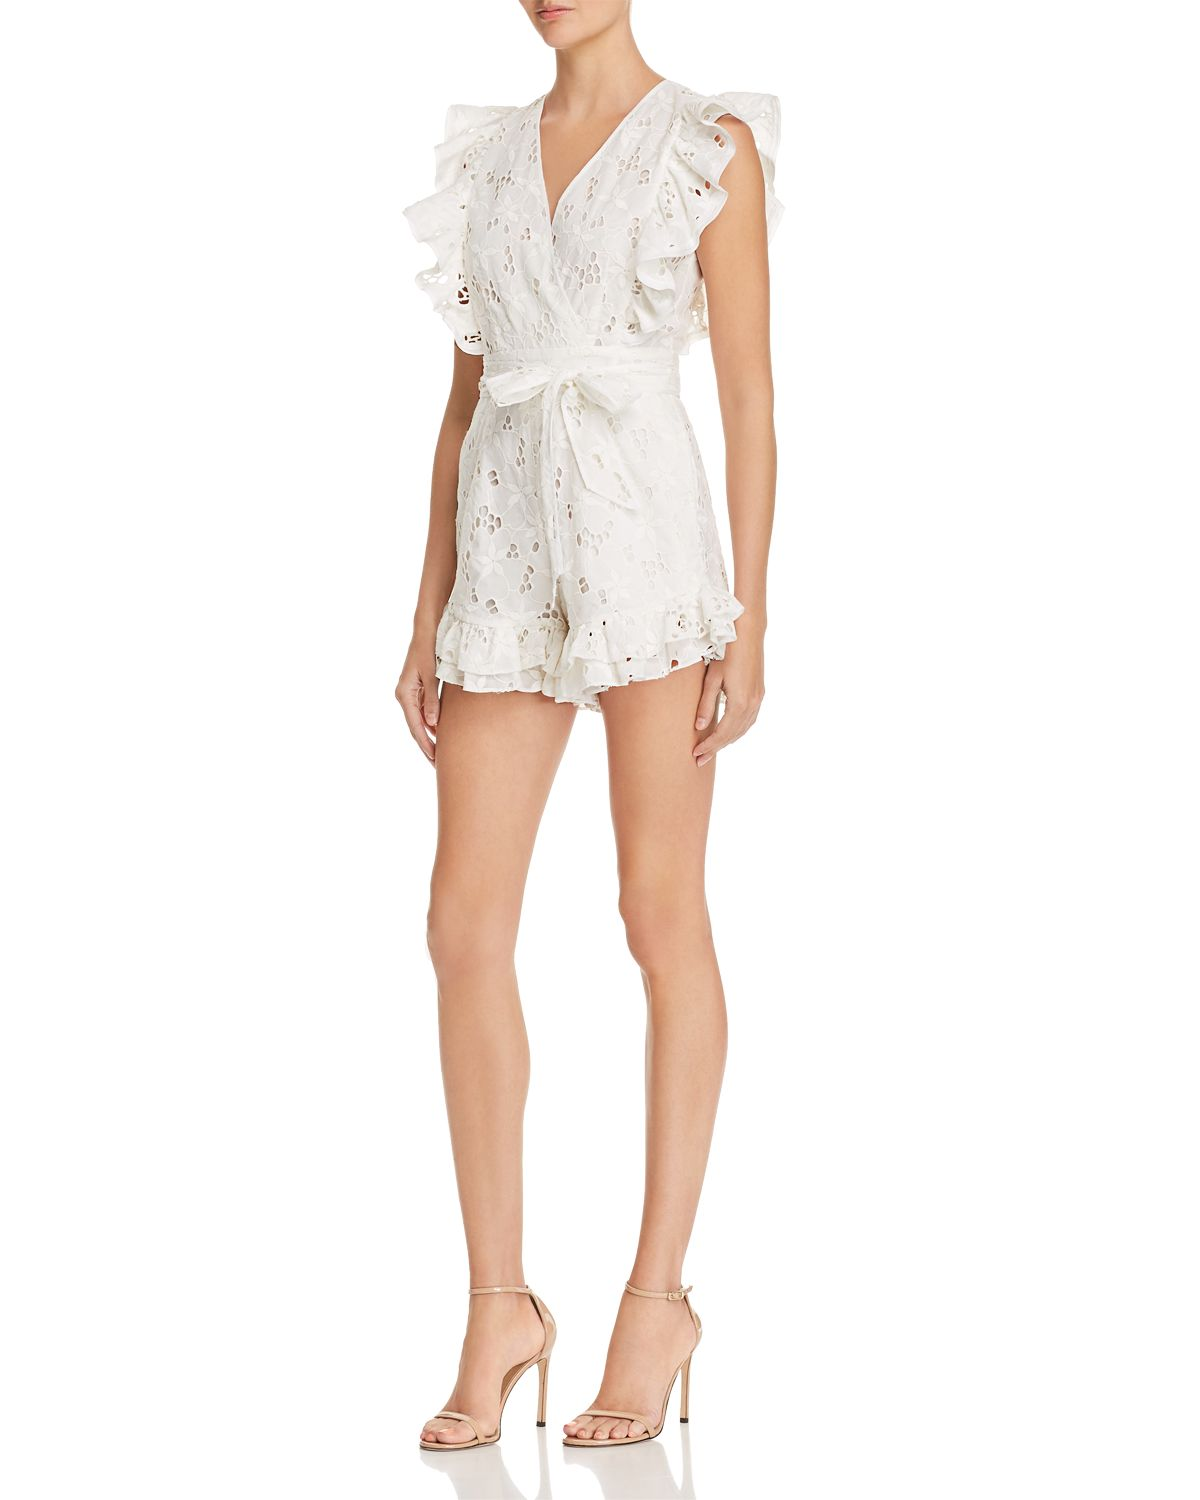 Adriana Ruffled Lace Romper by Rebecca Taylor